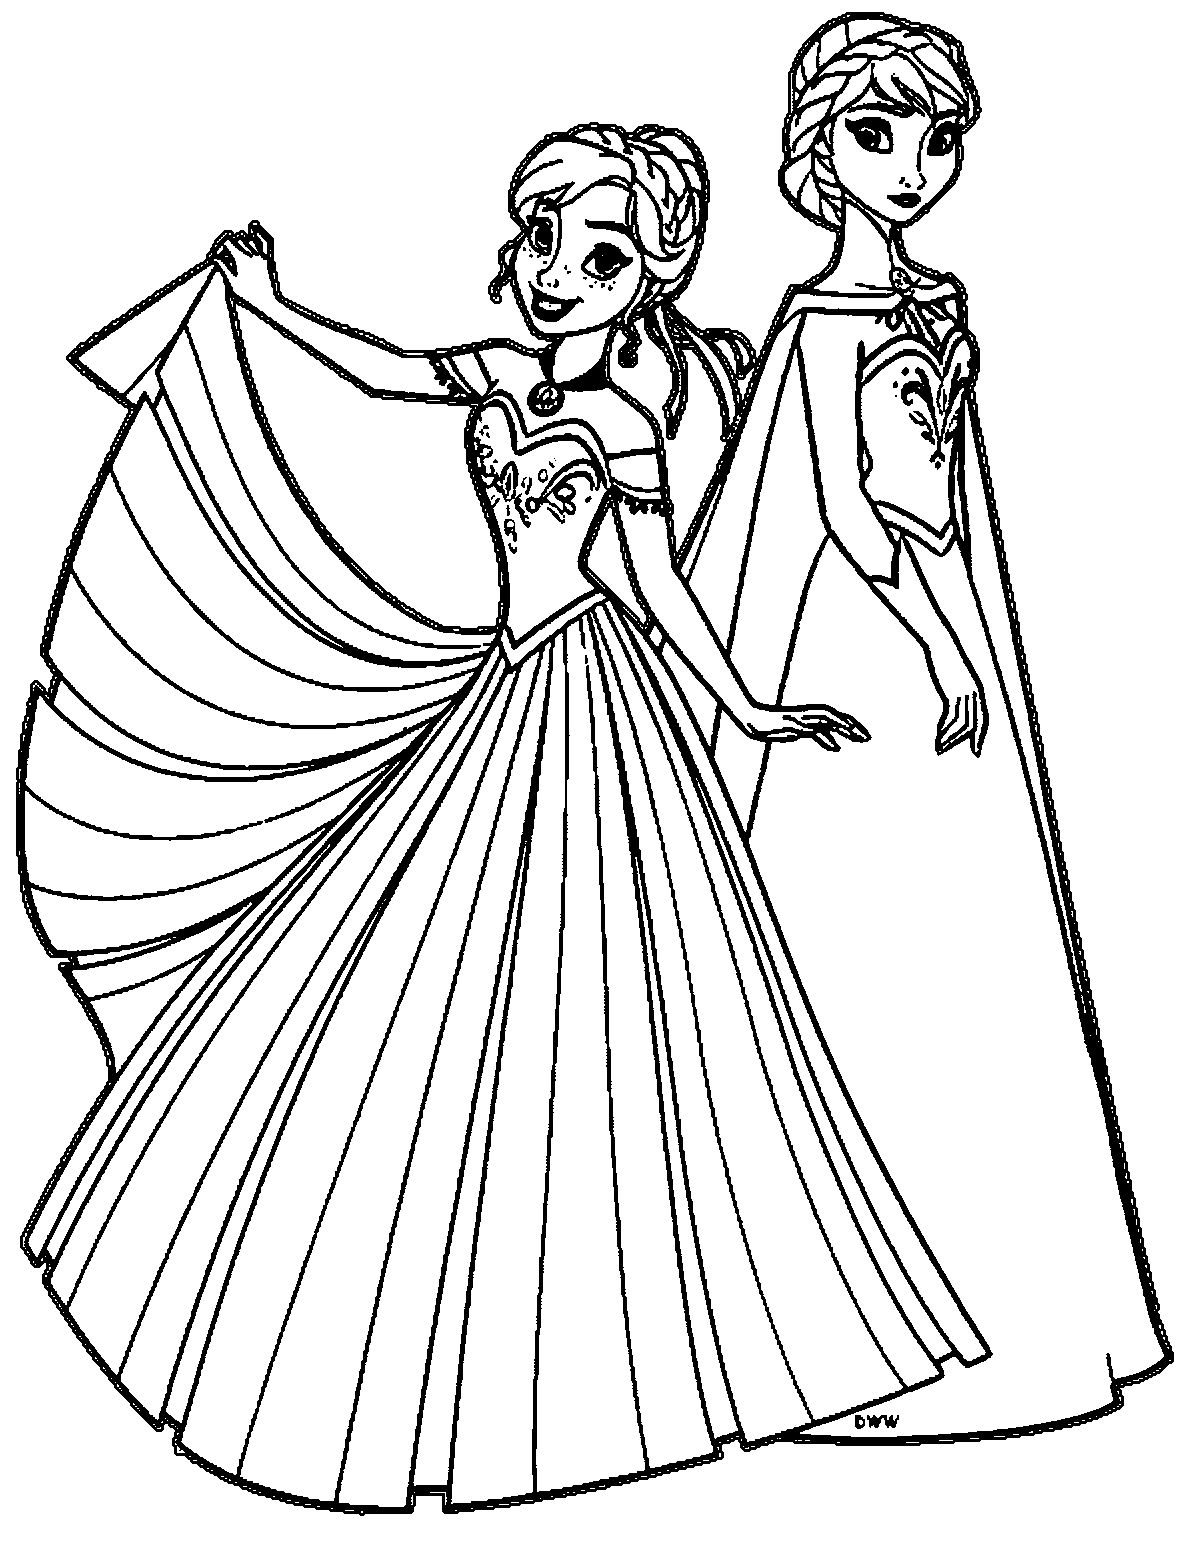 Anna Coloring Pages 28 Elsa Anna Coloring Pages Images Free Coloring Pages Part 3 Entitlementtrap Com Malen